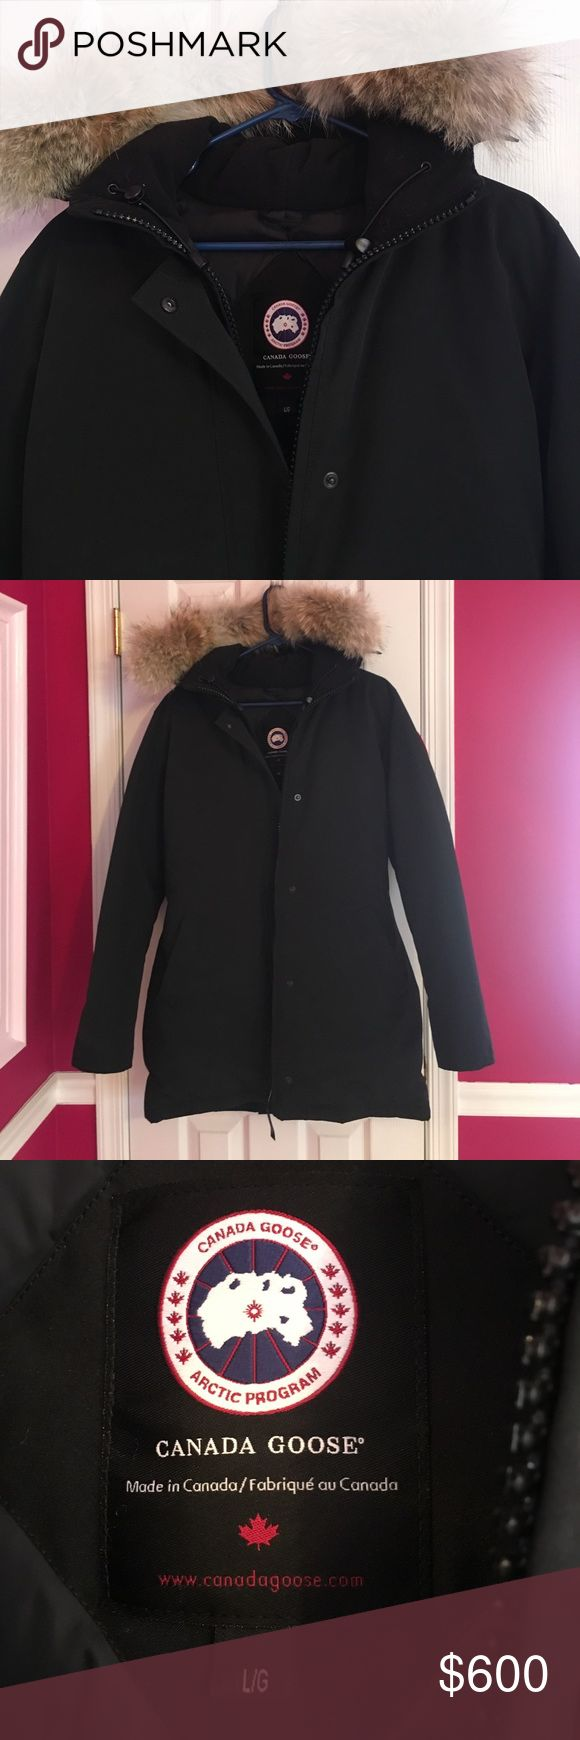 Twice worn Canada goose jacket Worn twice! Perfect condition basically new. Mid length- not too long. Canada Goose Jackets & Coats Utility Jackets